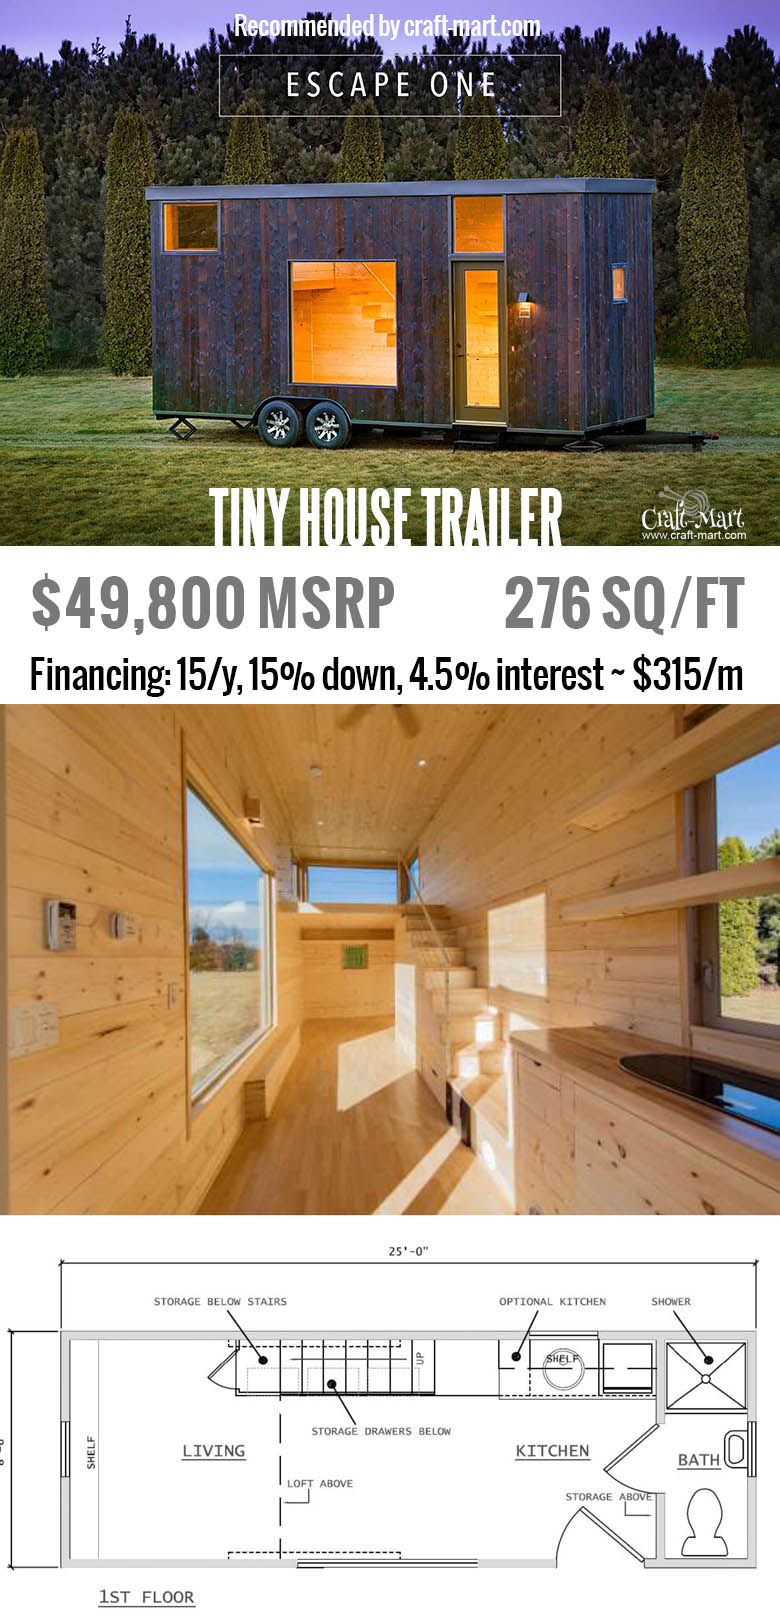 276 sq/ft. including second floor. Get one of these for FREE and start earning money from renting it! Or simply buy one of the most beautiful tiny house trailers with easy financing starting from $195/m! #tinyhouse #tinyhouseplans #minimalism